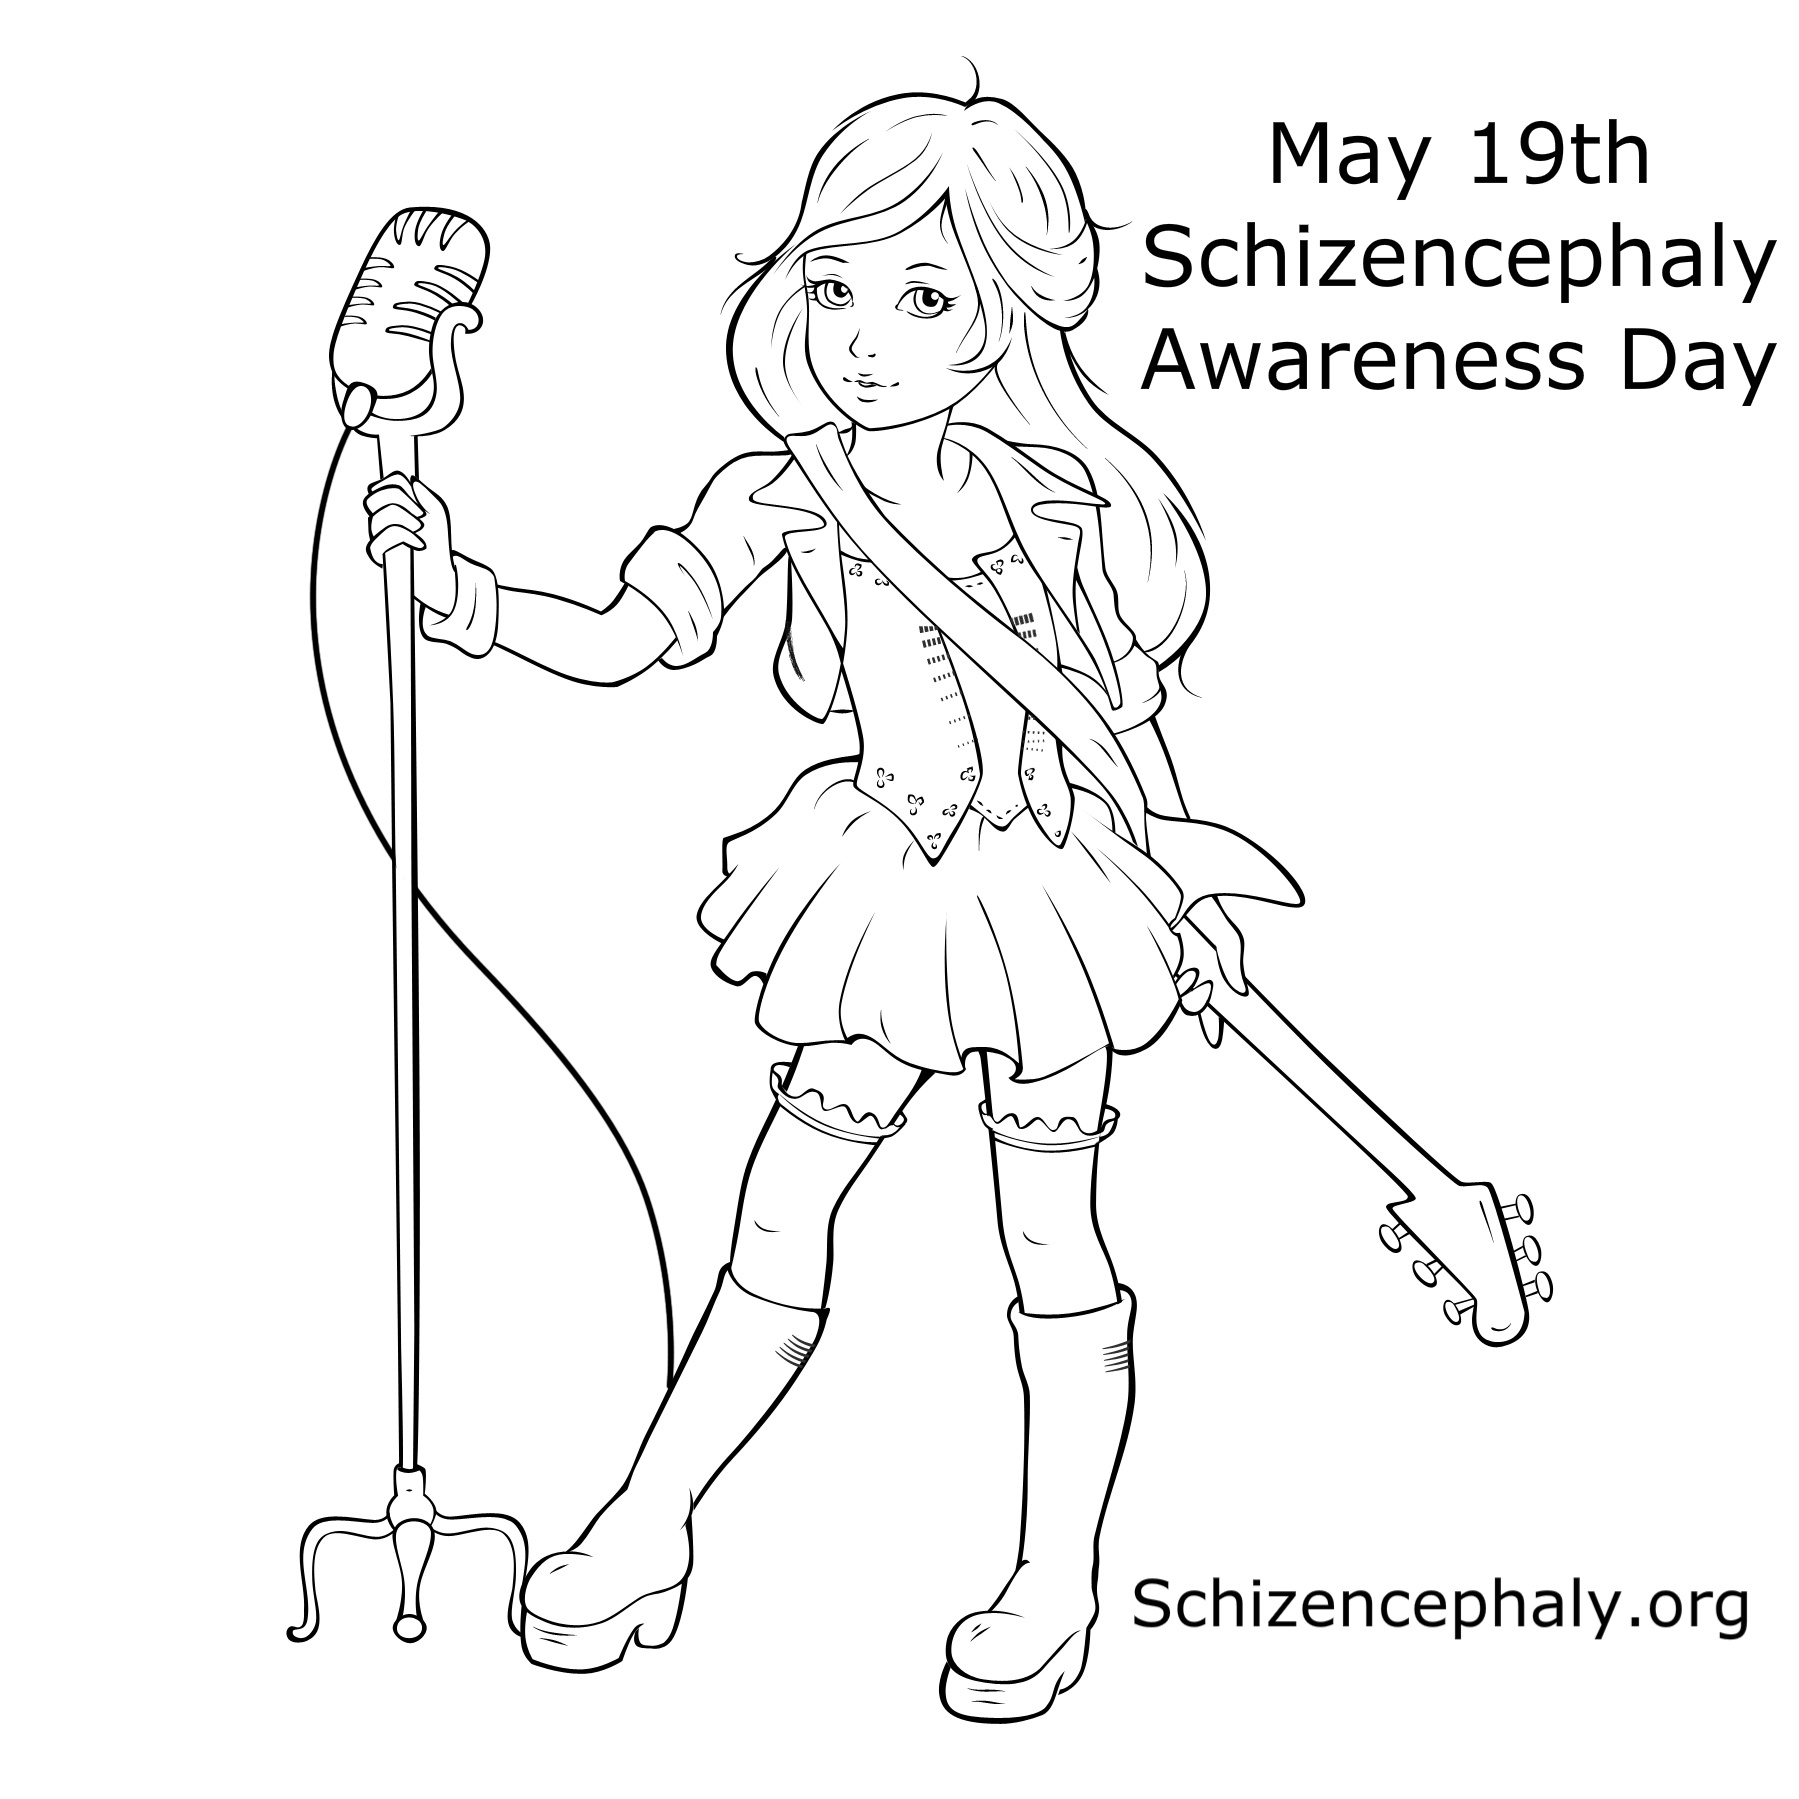 May 19th Schizencephaly Contest